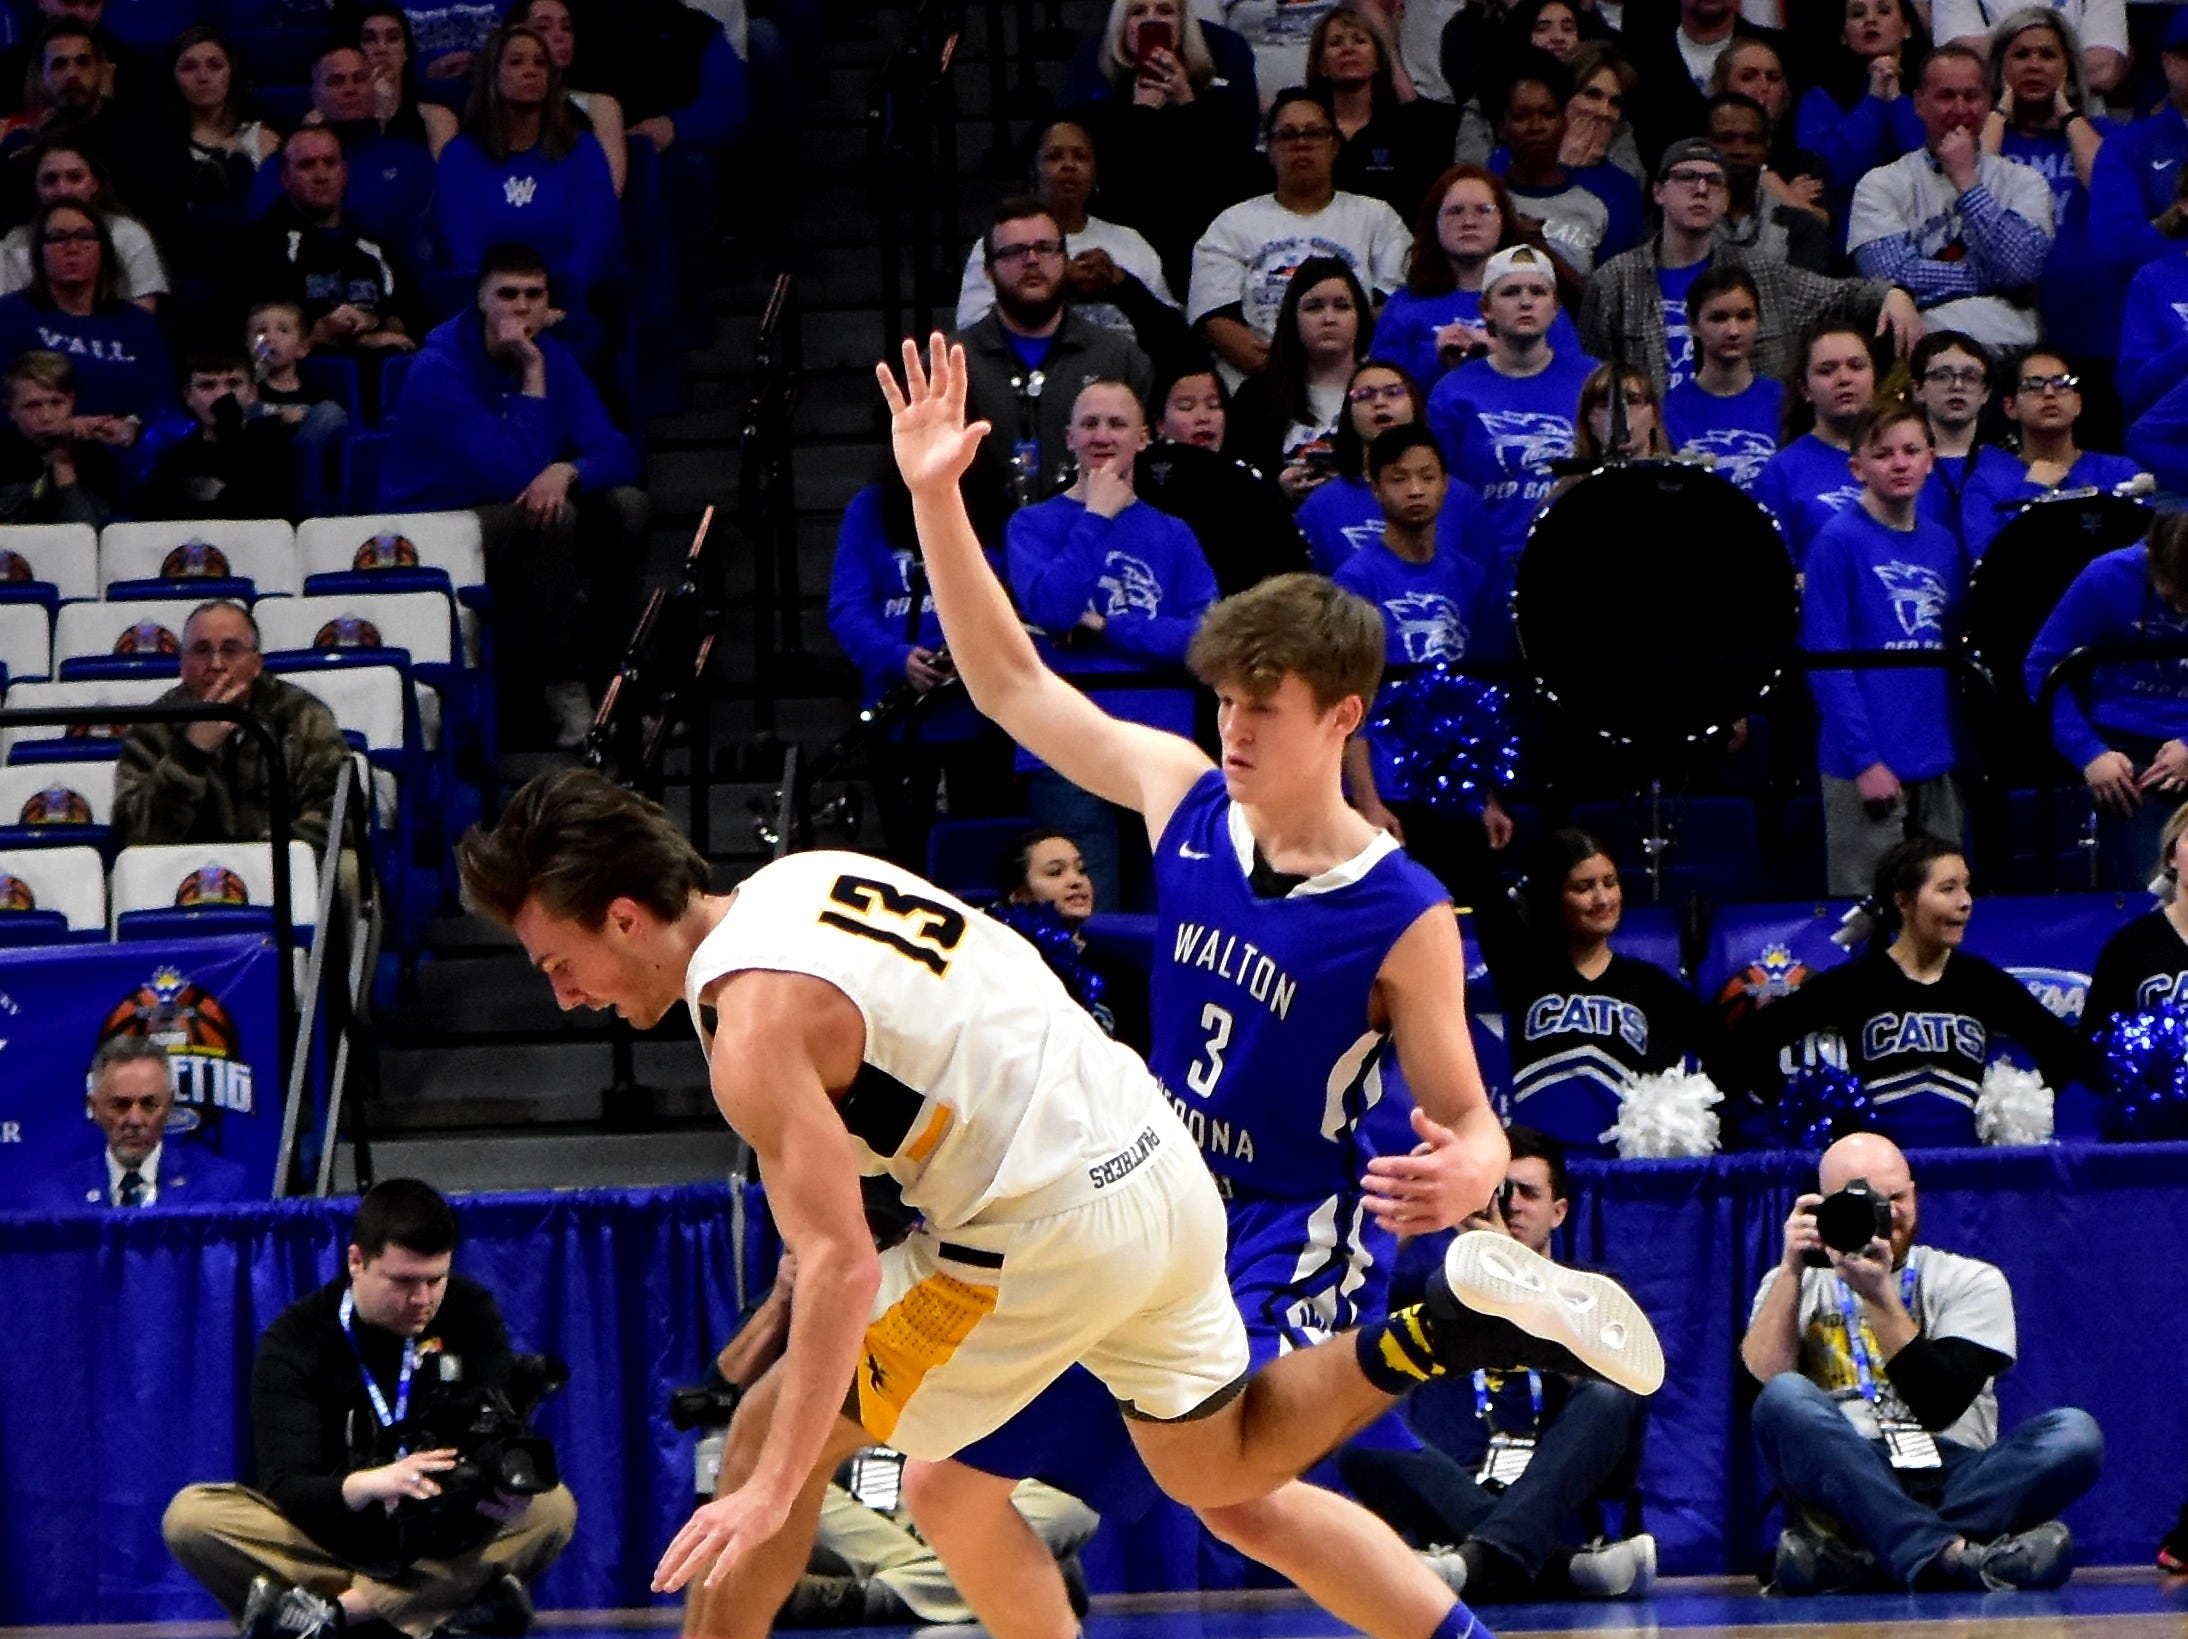 Garrett Jones (3) of Walton Verona traps his offender at mid court for the Bearcats at the KHSAA Sweet 16 Tournament at Rupp Arena in Lexington, KY, March 6, 2019